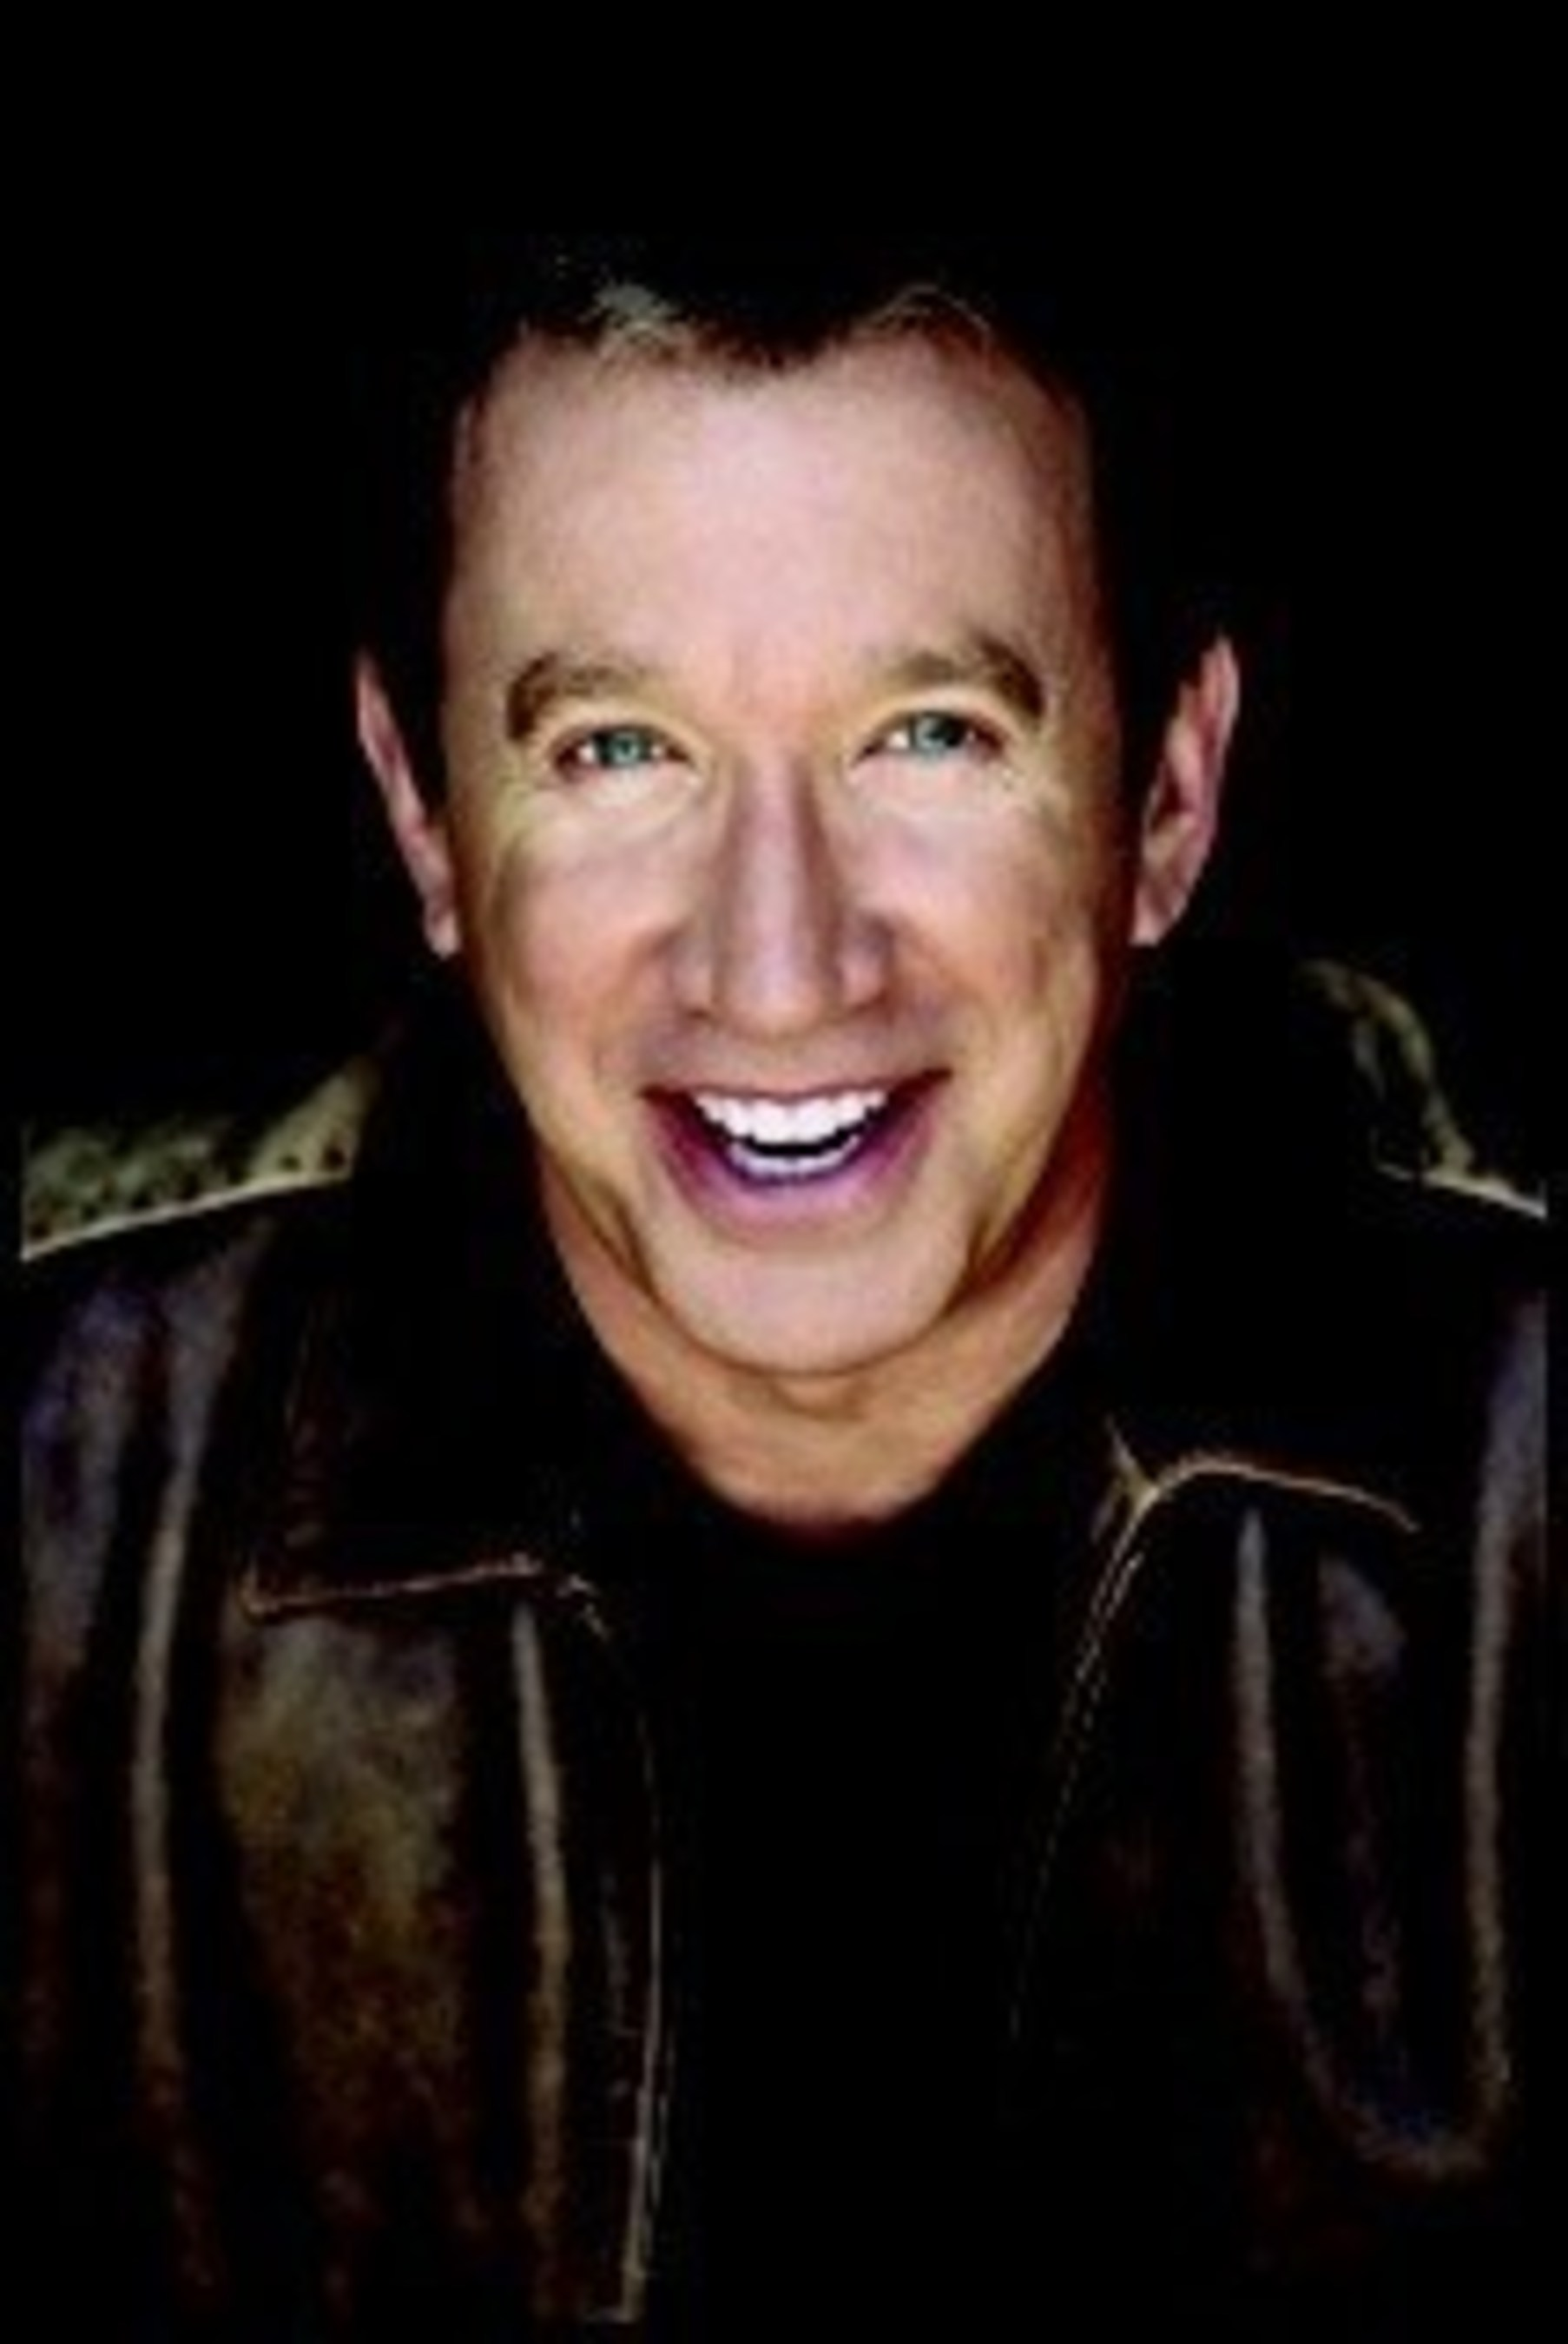 """The Parade Company is pleased to announce beloved actor, Tim Allen, as Grand Marshal for the 89th America's Thanksgiving Parade(R) presented by Art Van. The Michigan native and current star of the hit sitcom """"Last Man Standing"""" on ABC will return to his home state to be honored during this year's parade as it travels down Woodward Avenue on Thanksgiving morning."""